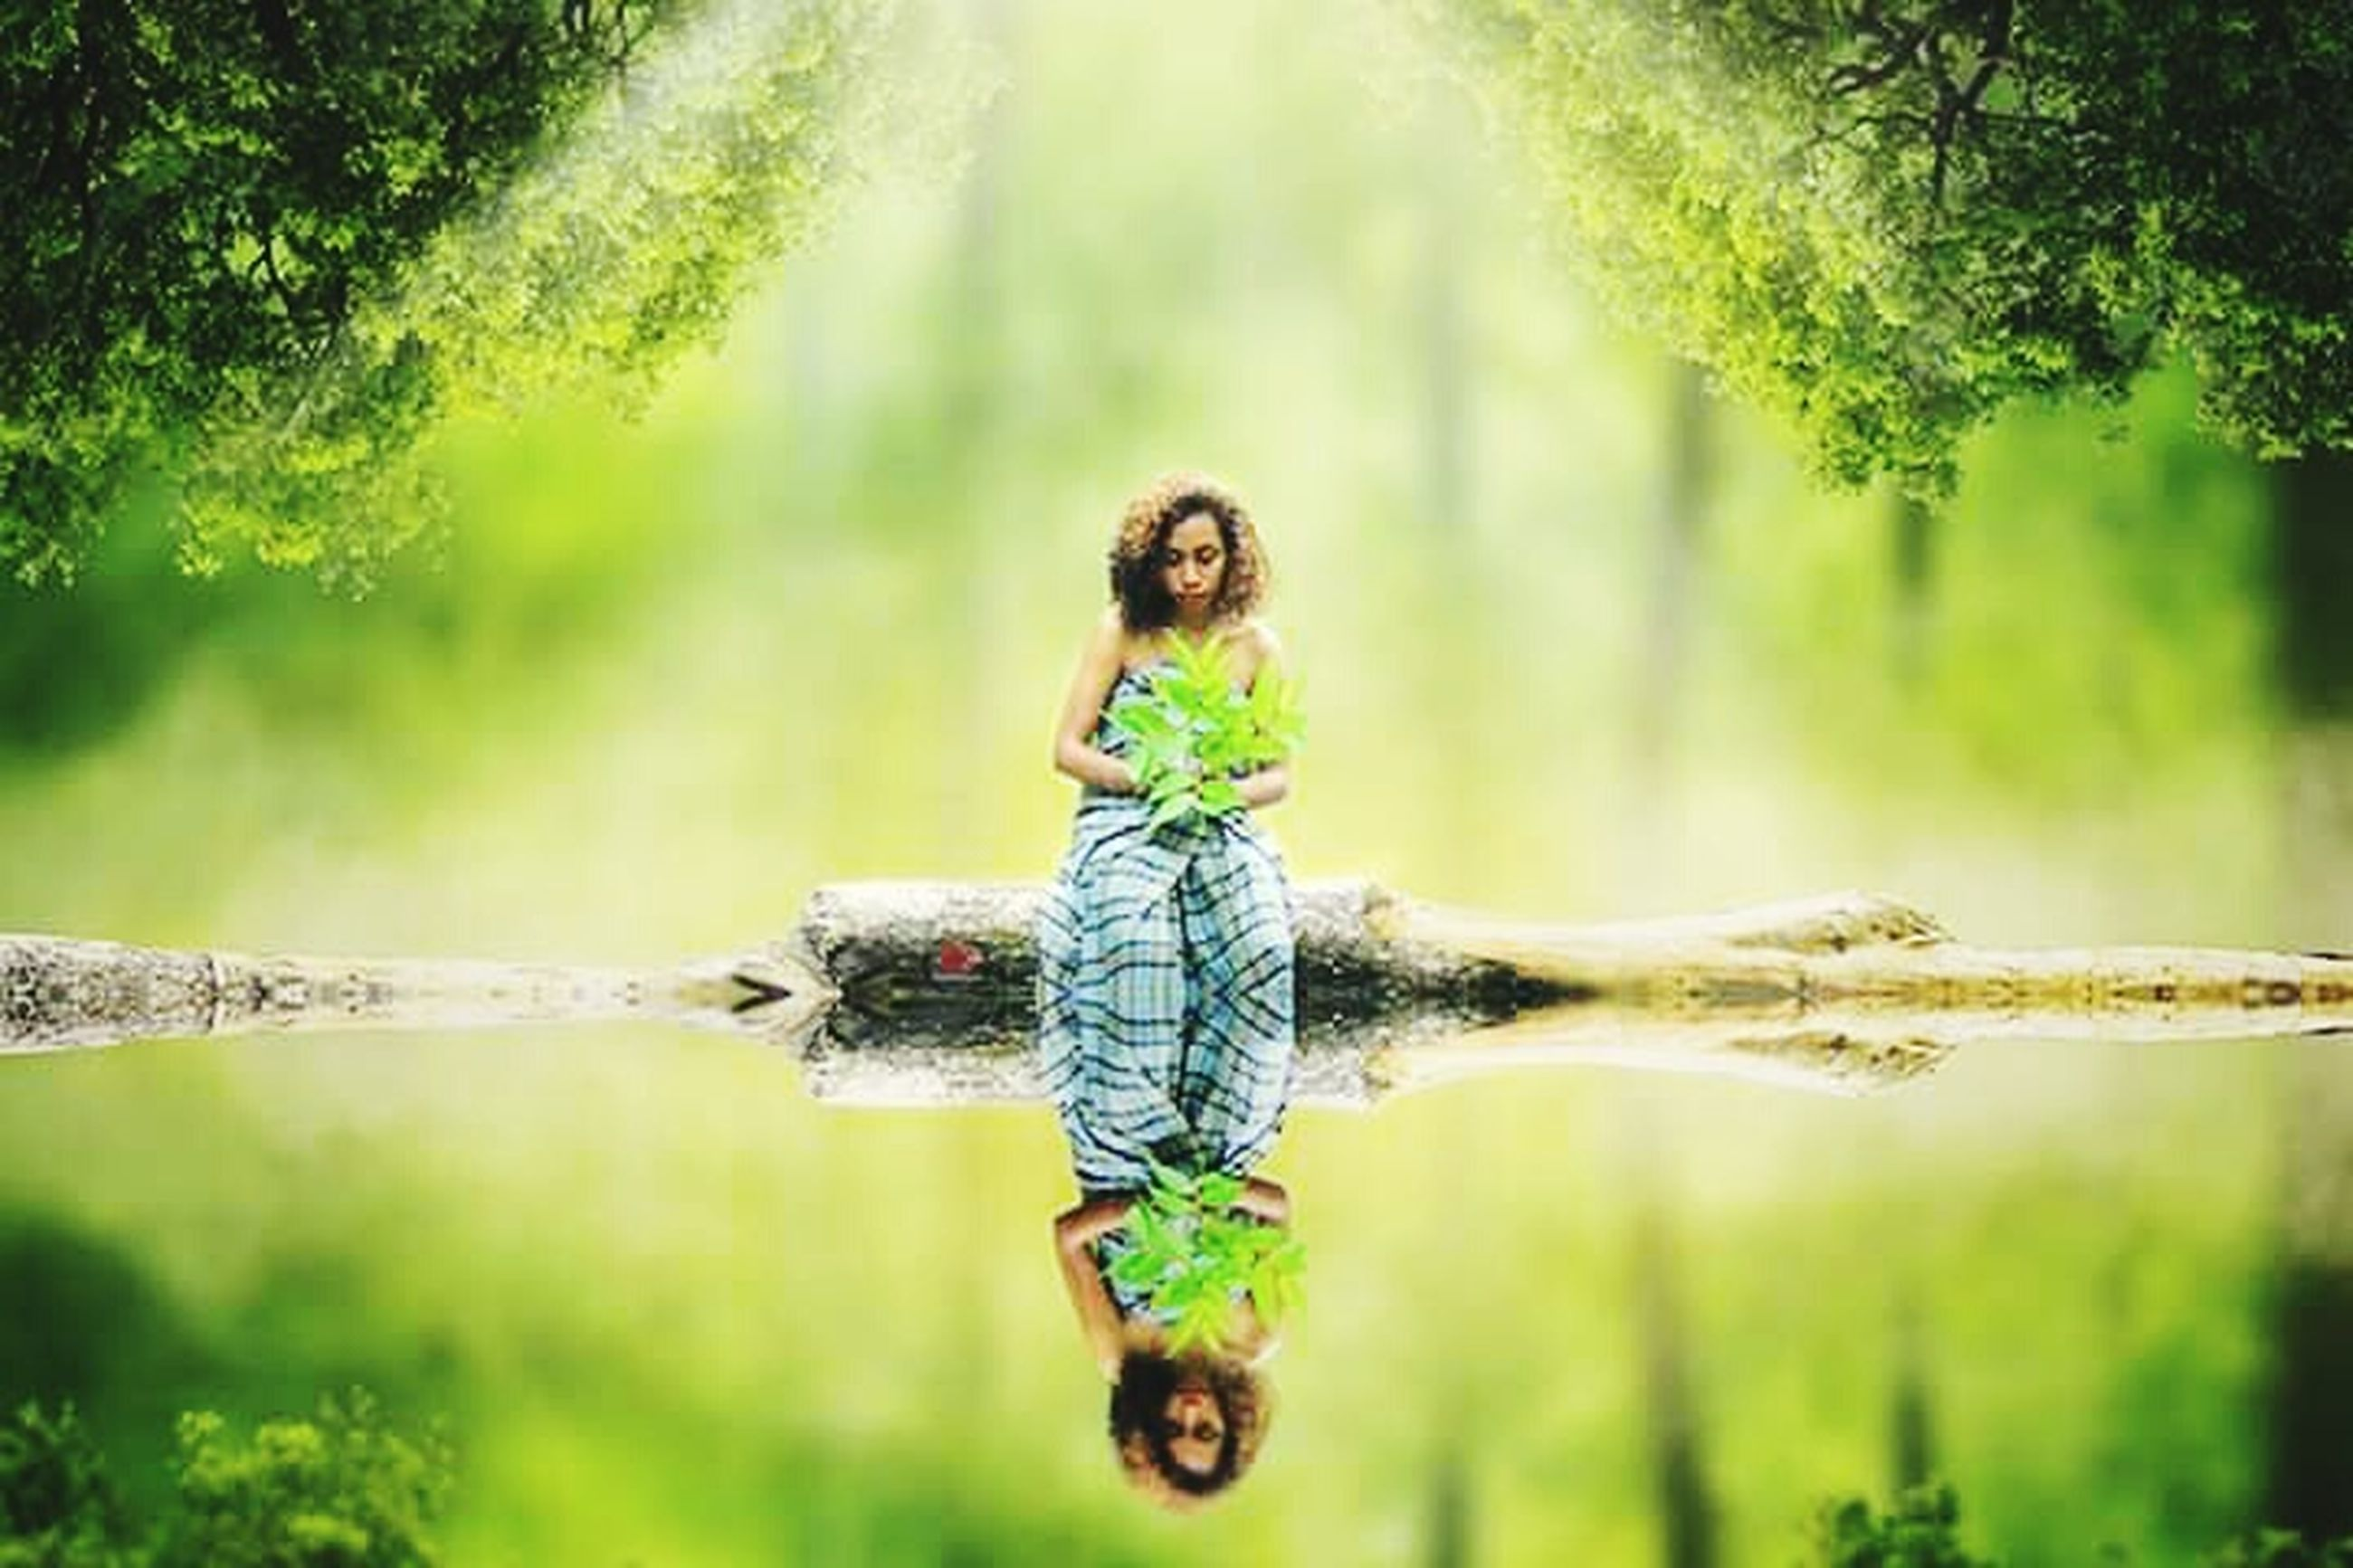 lake, water, one person, plant, tree, nature, reflection, forest, beauty in nature, day, full length, hairstyle, brown hair, selective focus, adult, summer, women, standing water, outdoors